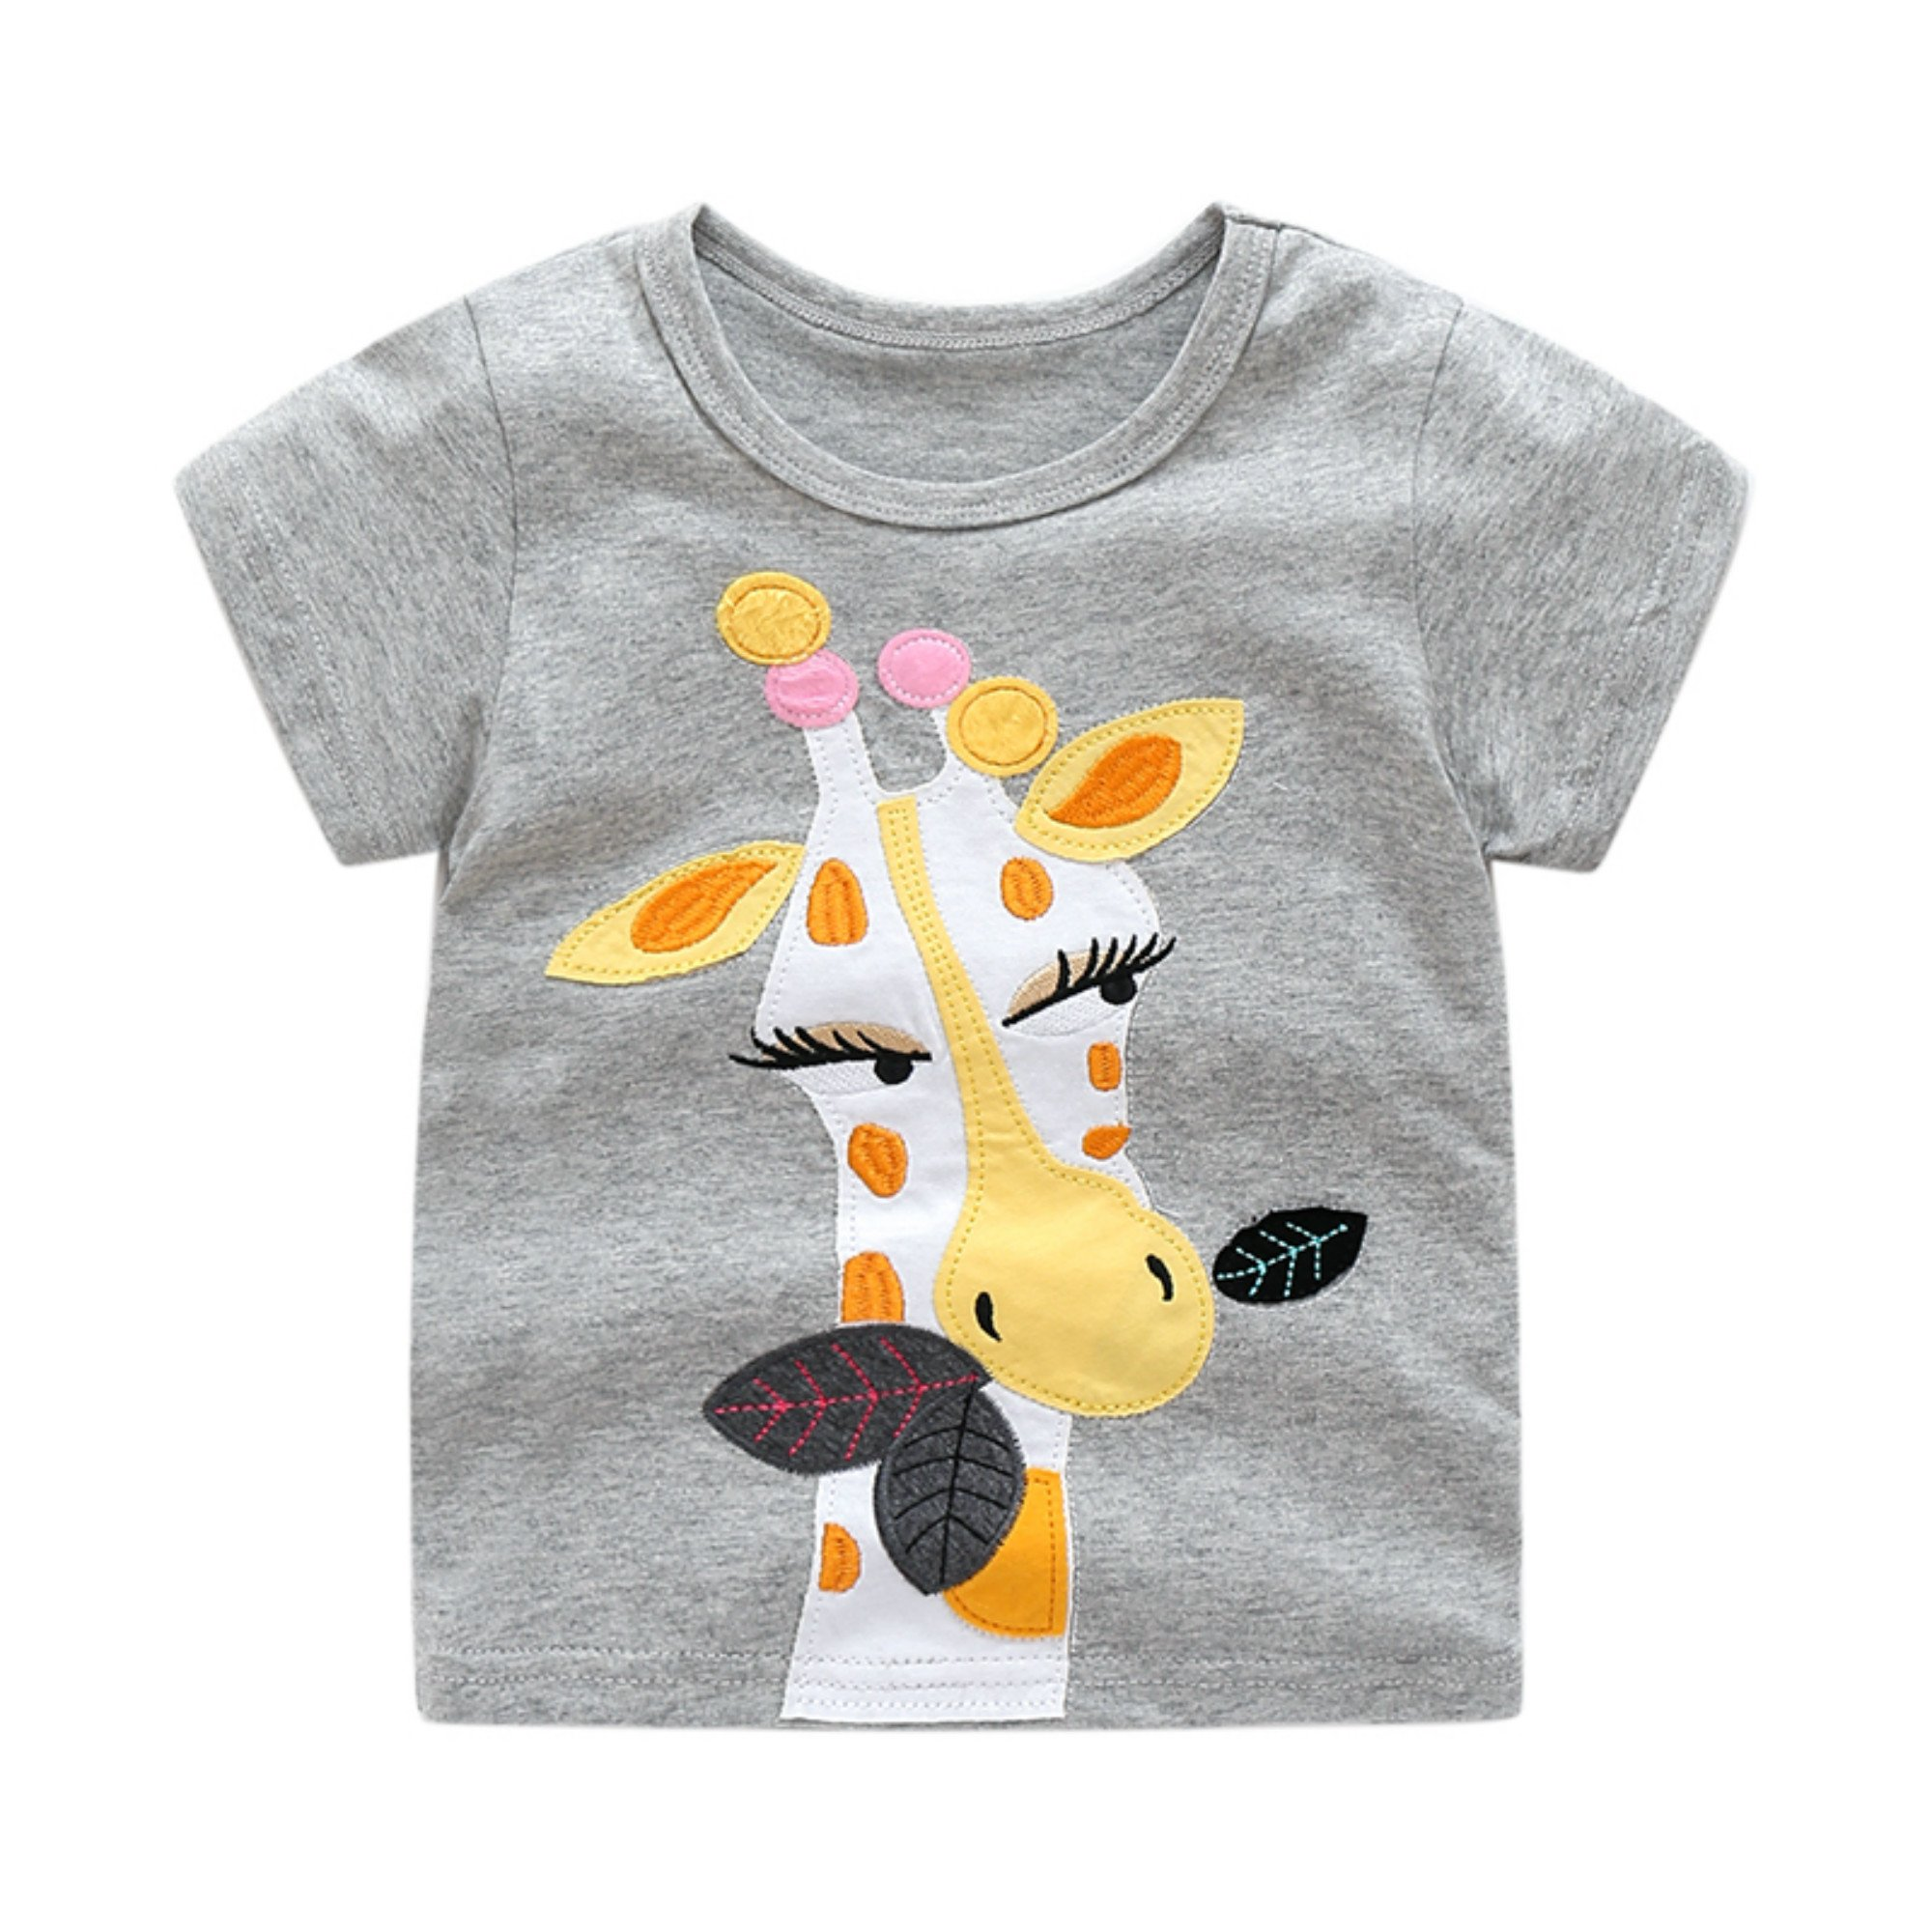 Toddler Boys Girls T-shirts Tops Organic Short-sleeved Cute Animals Prints Embroidery Unisex 2t-7t (6T, Grey)